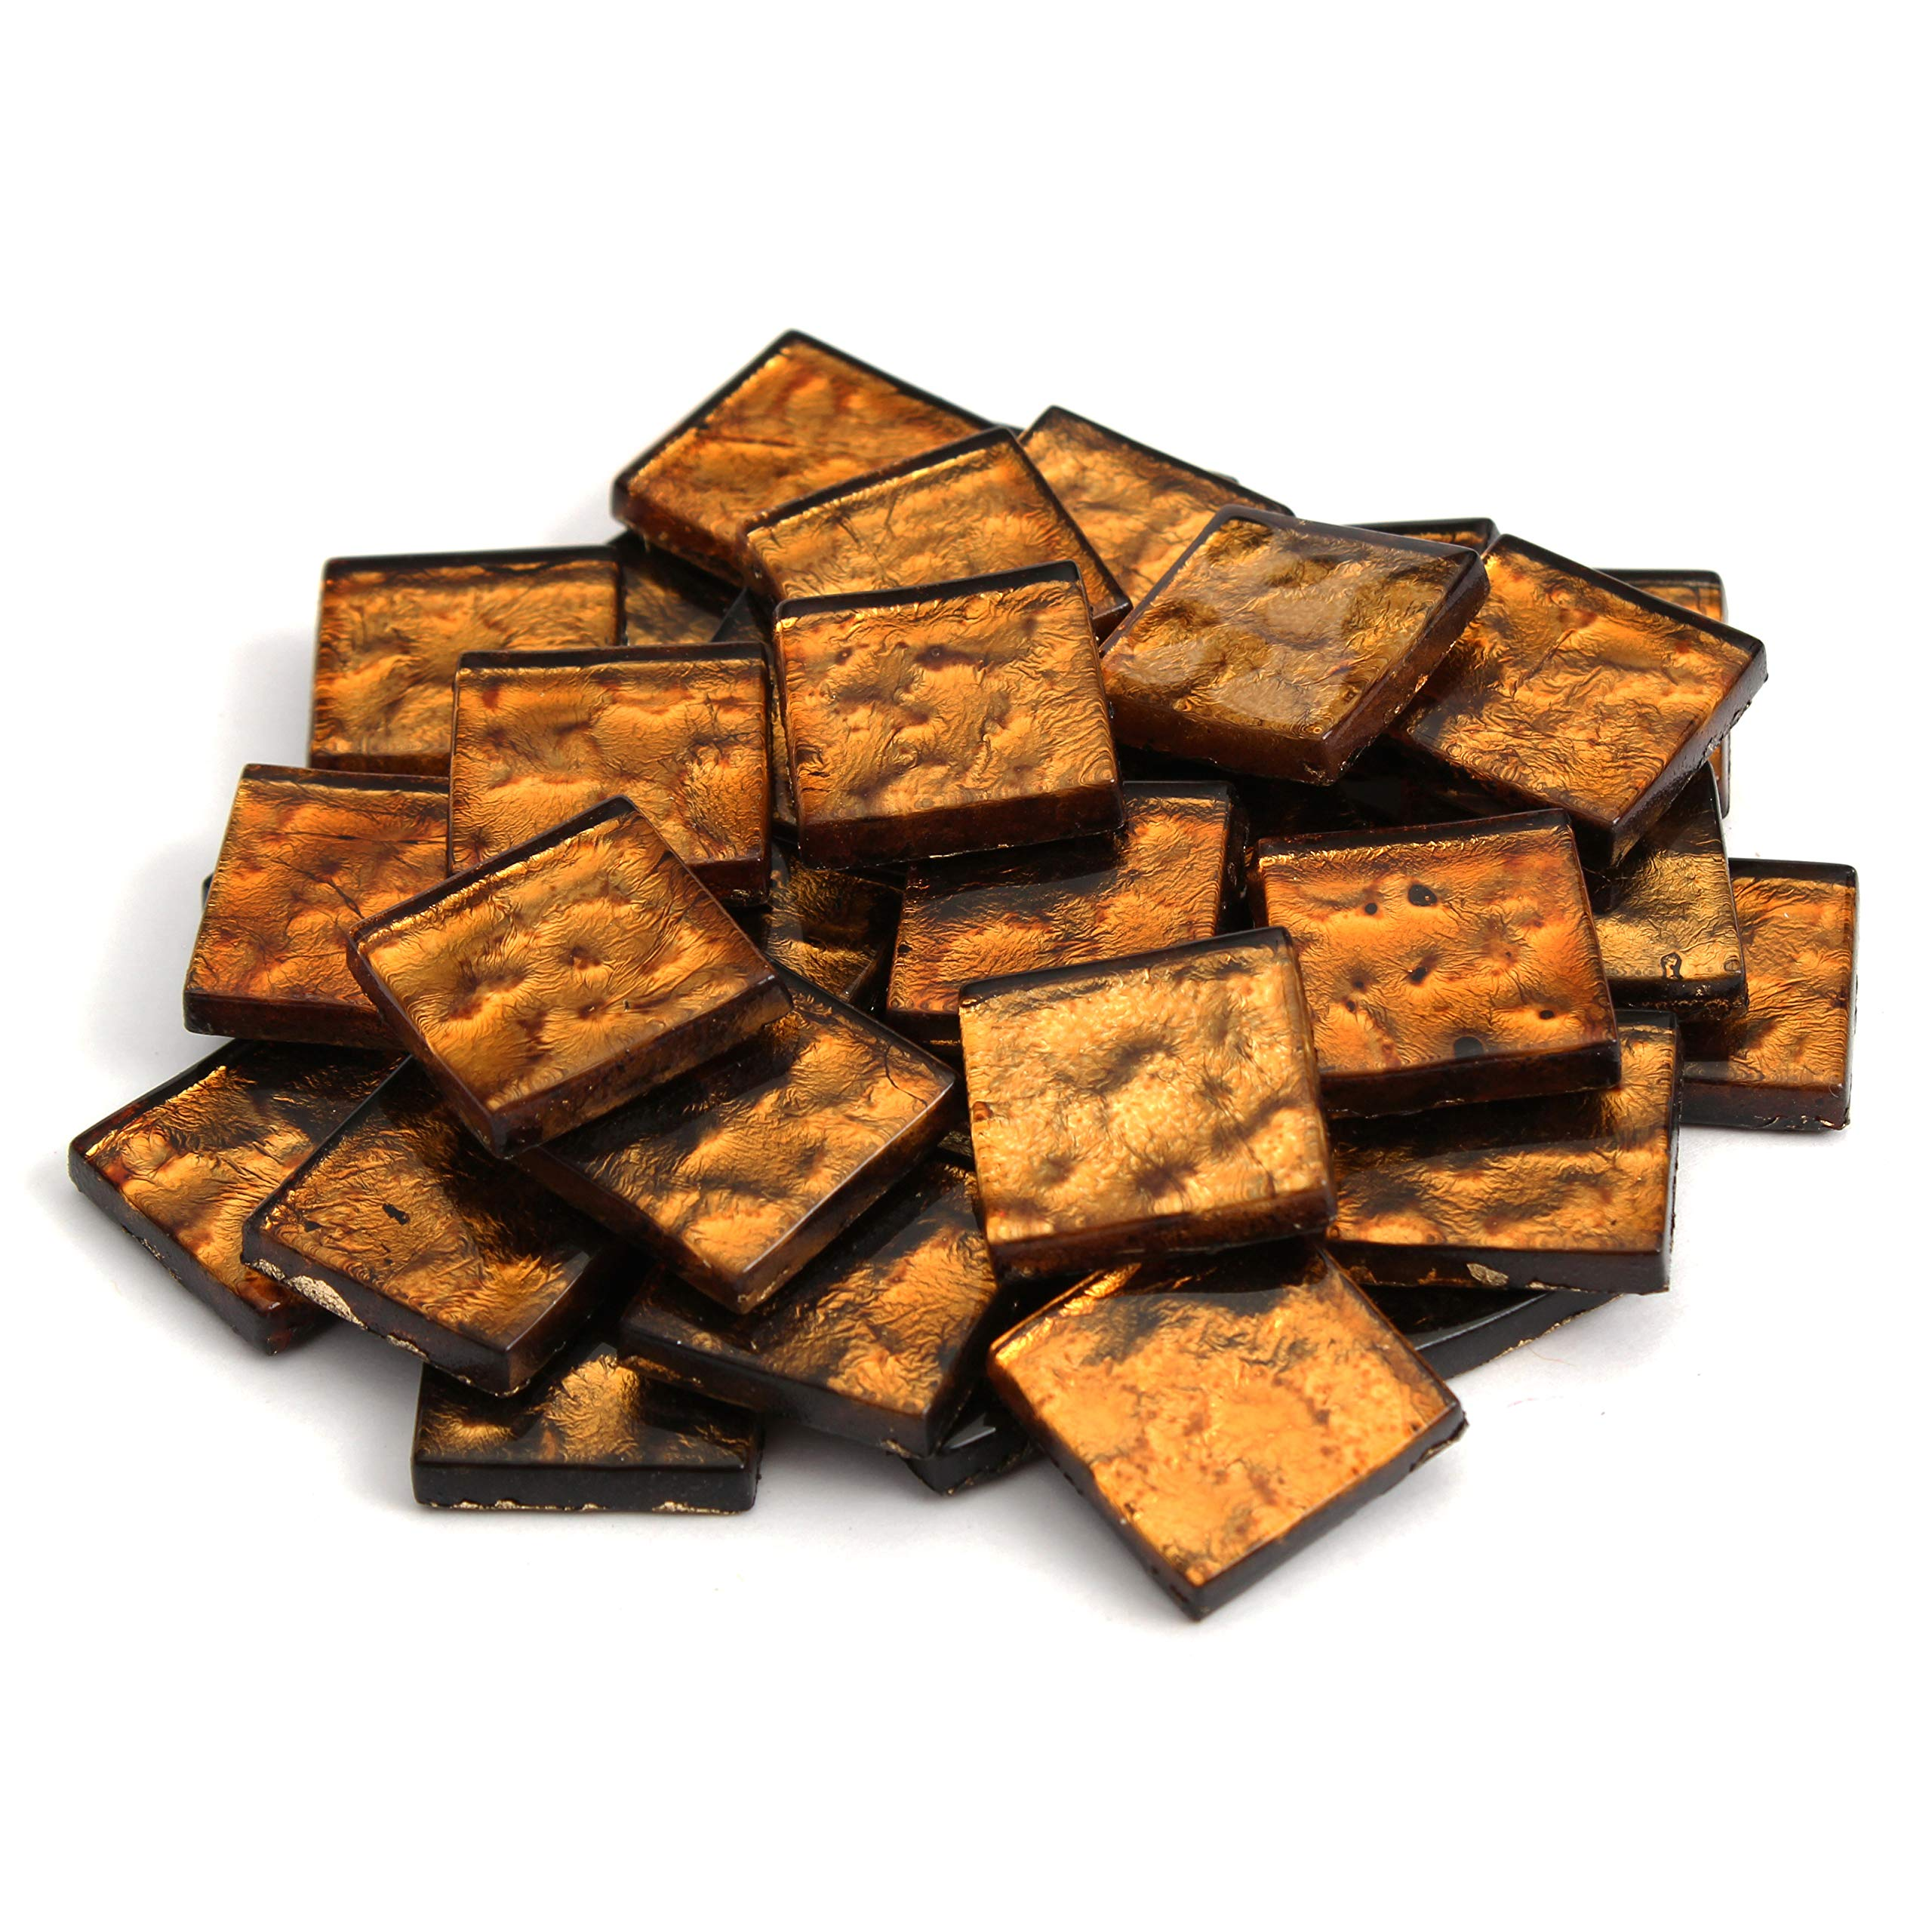 Milltown MerchantsTM 3/4 Inch (20mm) Amber Crystal Mosaic Tile - Bulk Patterned Glass Mosaic Tiles - 3 Pound (48 oz) Bronze Tile Assortment for Backsplash, Murals, Stepping Stones, and Mosaics by Milltown Merchants